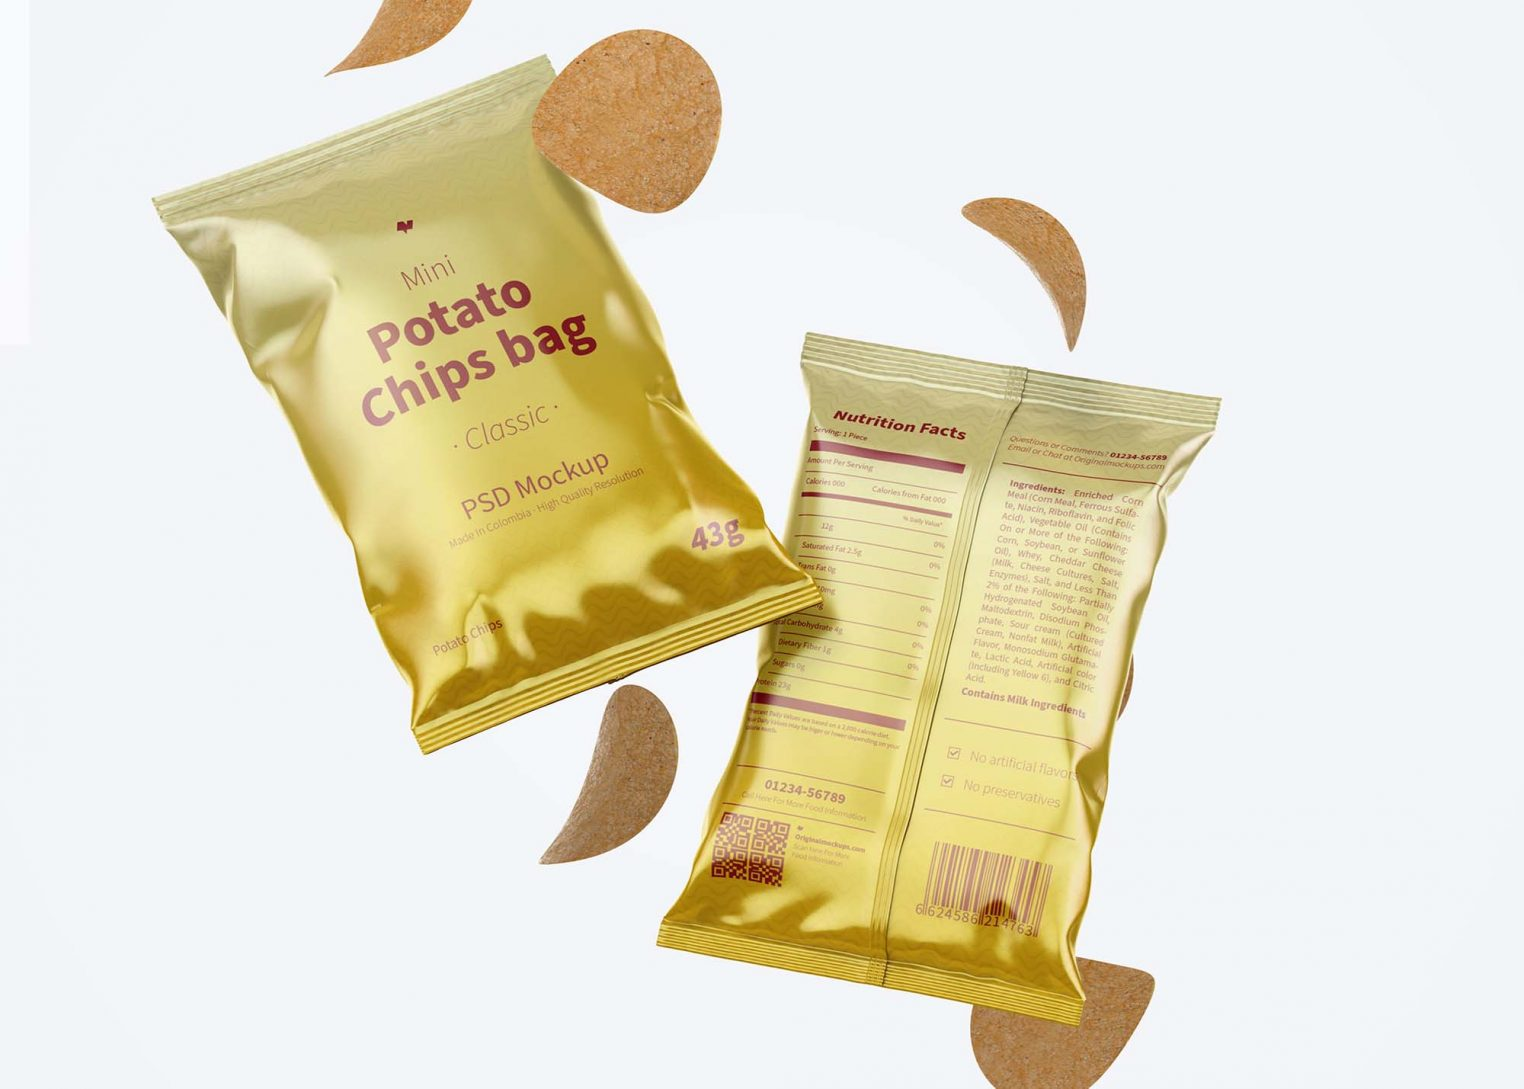 glossy-mini-potato-chips-bags-mockup-perspective-view